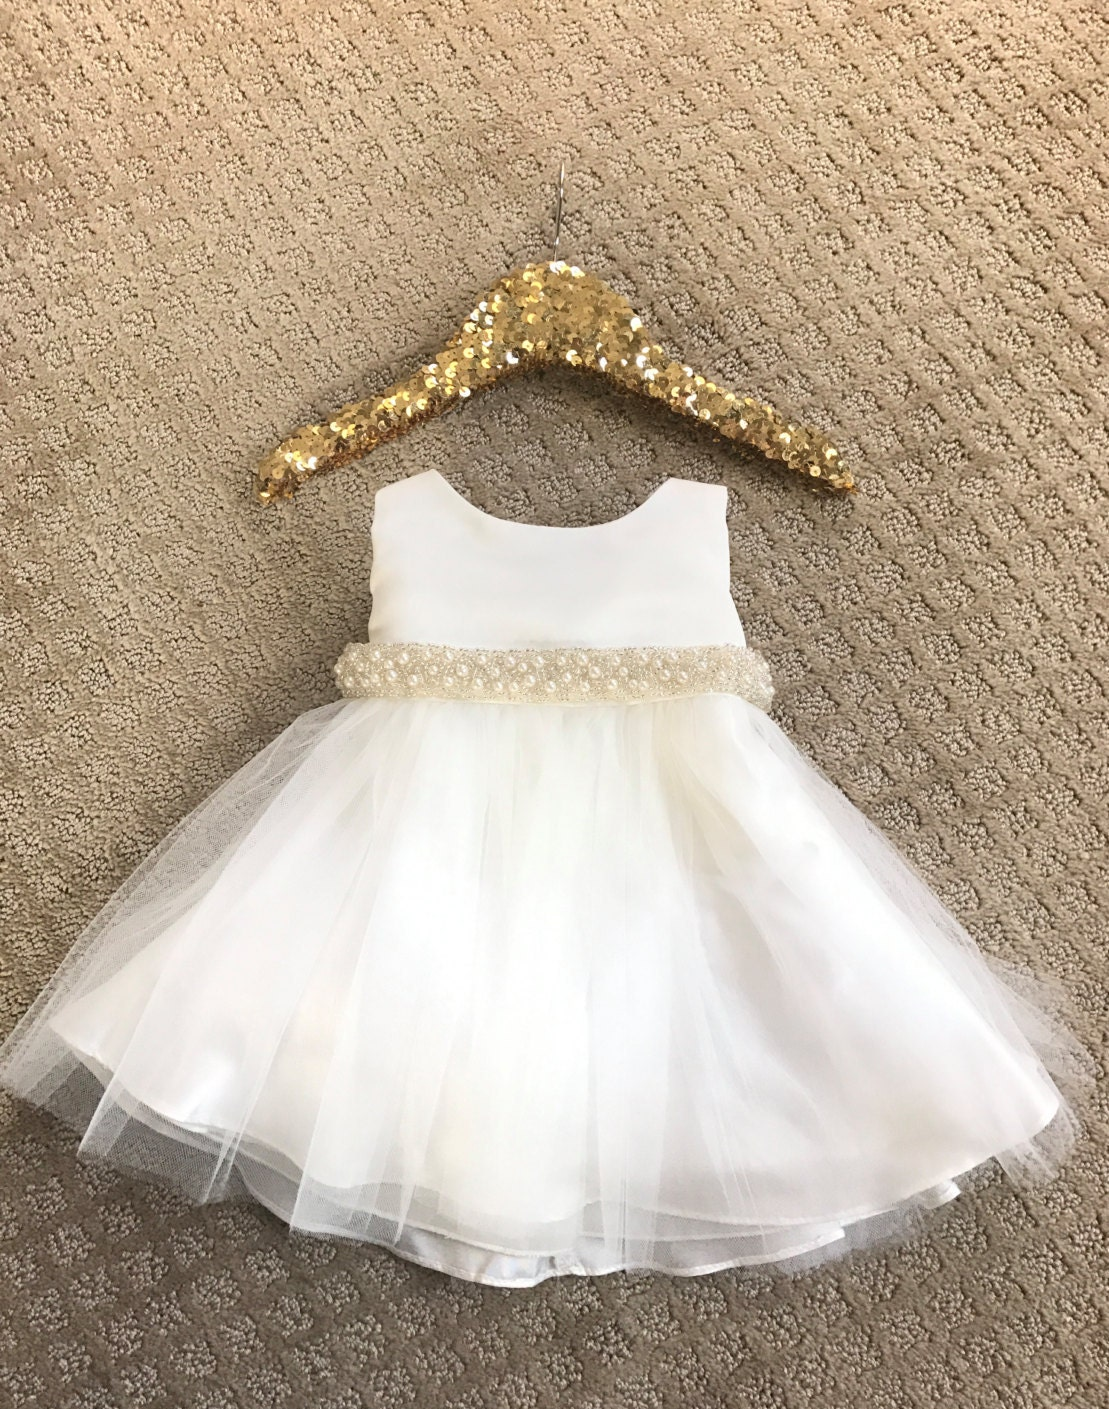 Baptism dress | Etsy